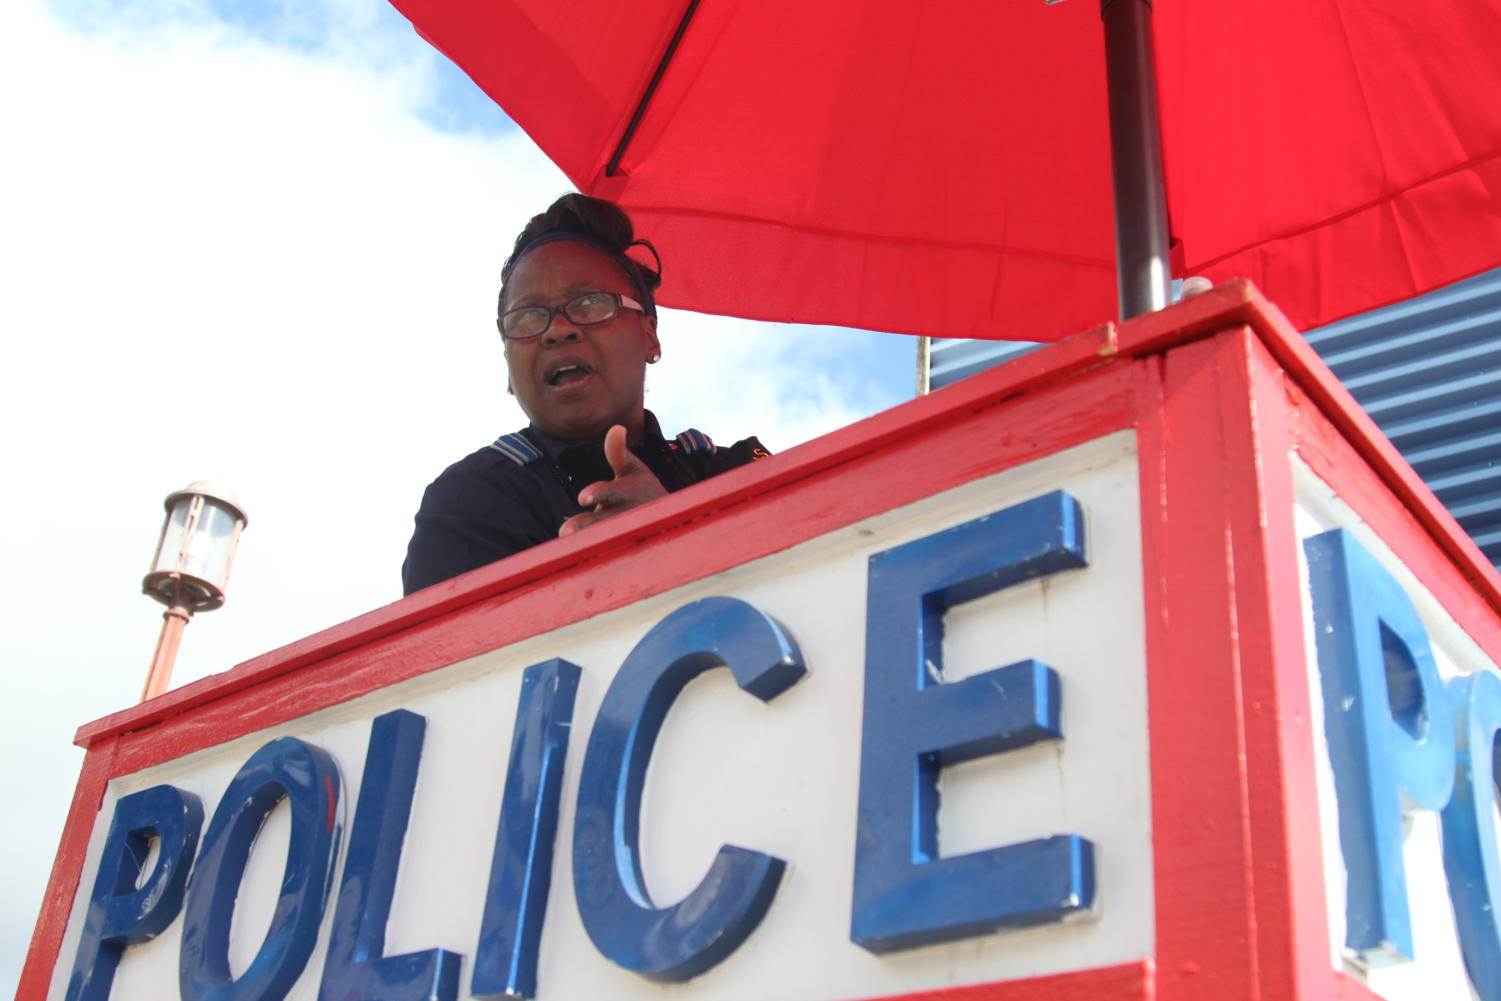 The police booths, medical offices and patrolling officers all help respond to danger at the Fair quickly. Despite this, the security has a weak preventative ability.